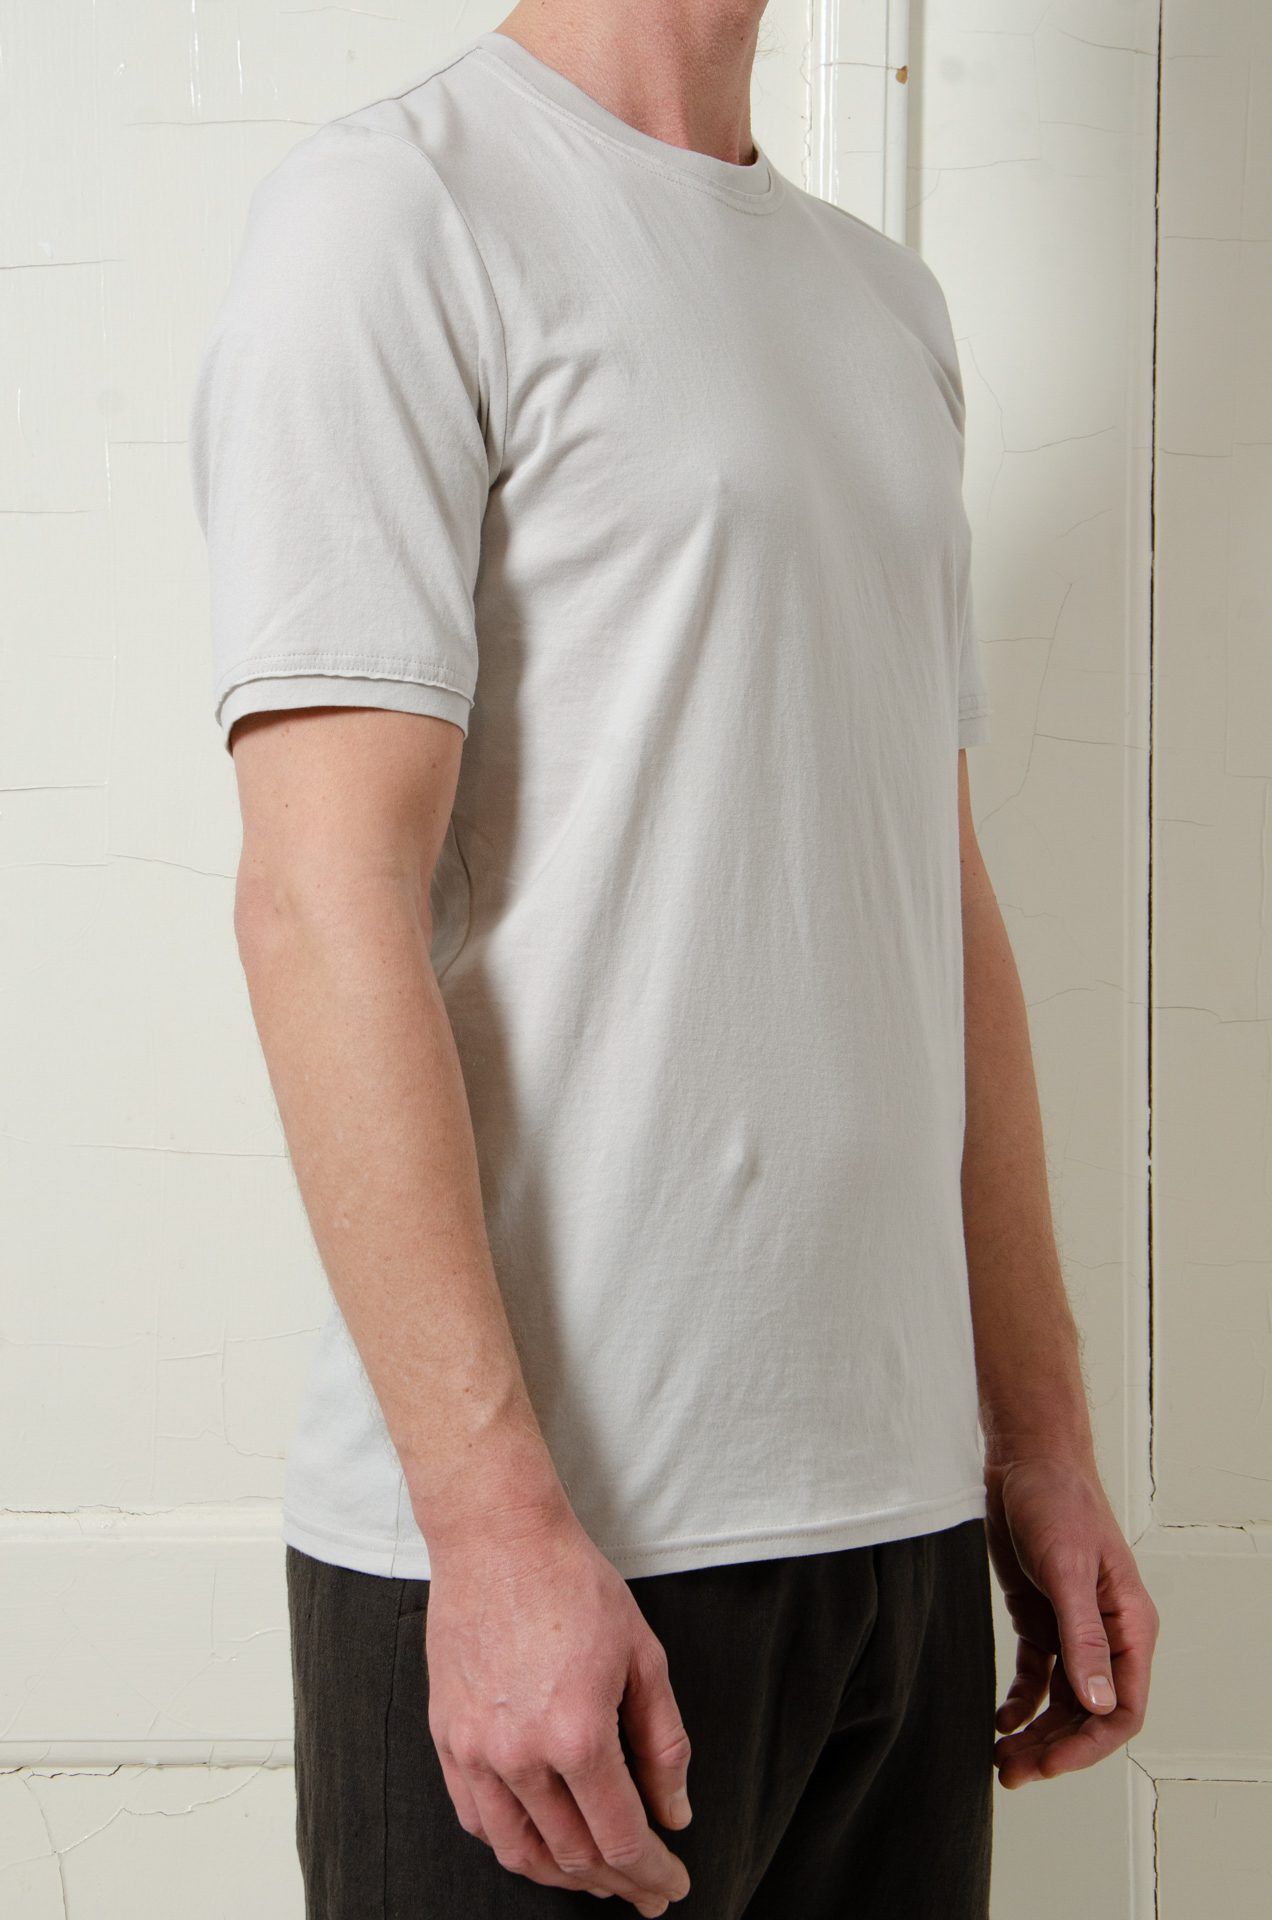 hannibal t shirt abel light grey 2